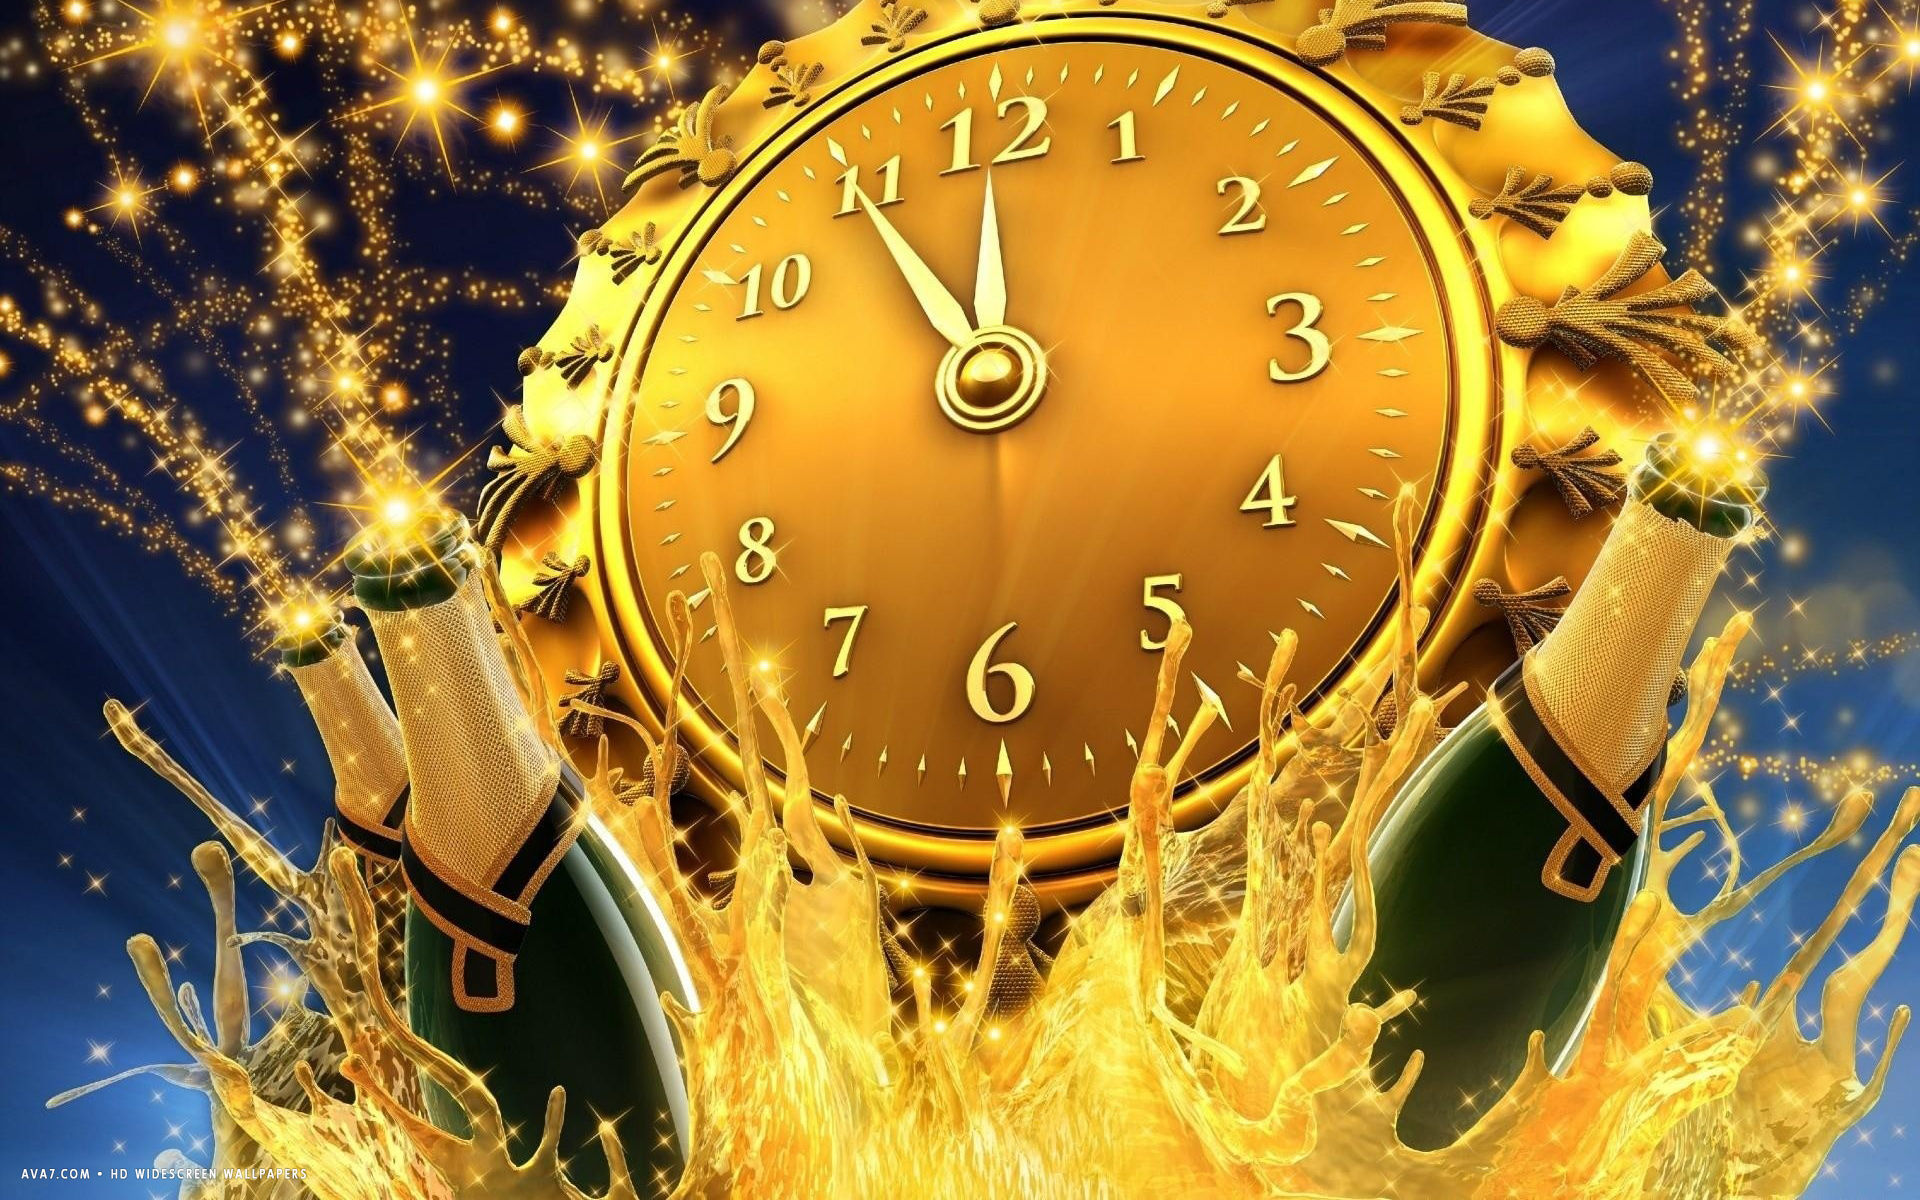 new year clock midnight champagne splash celebration holiday hd     new year clock midnight champagne splash celebration holiday hd widescreen  wallpaper